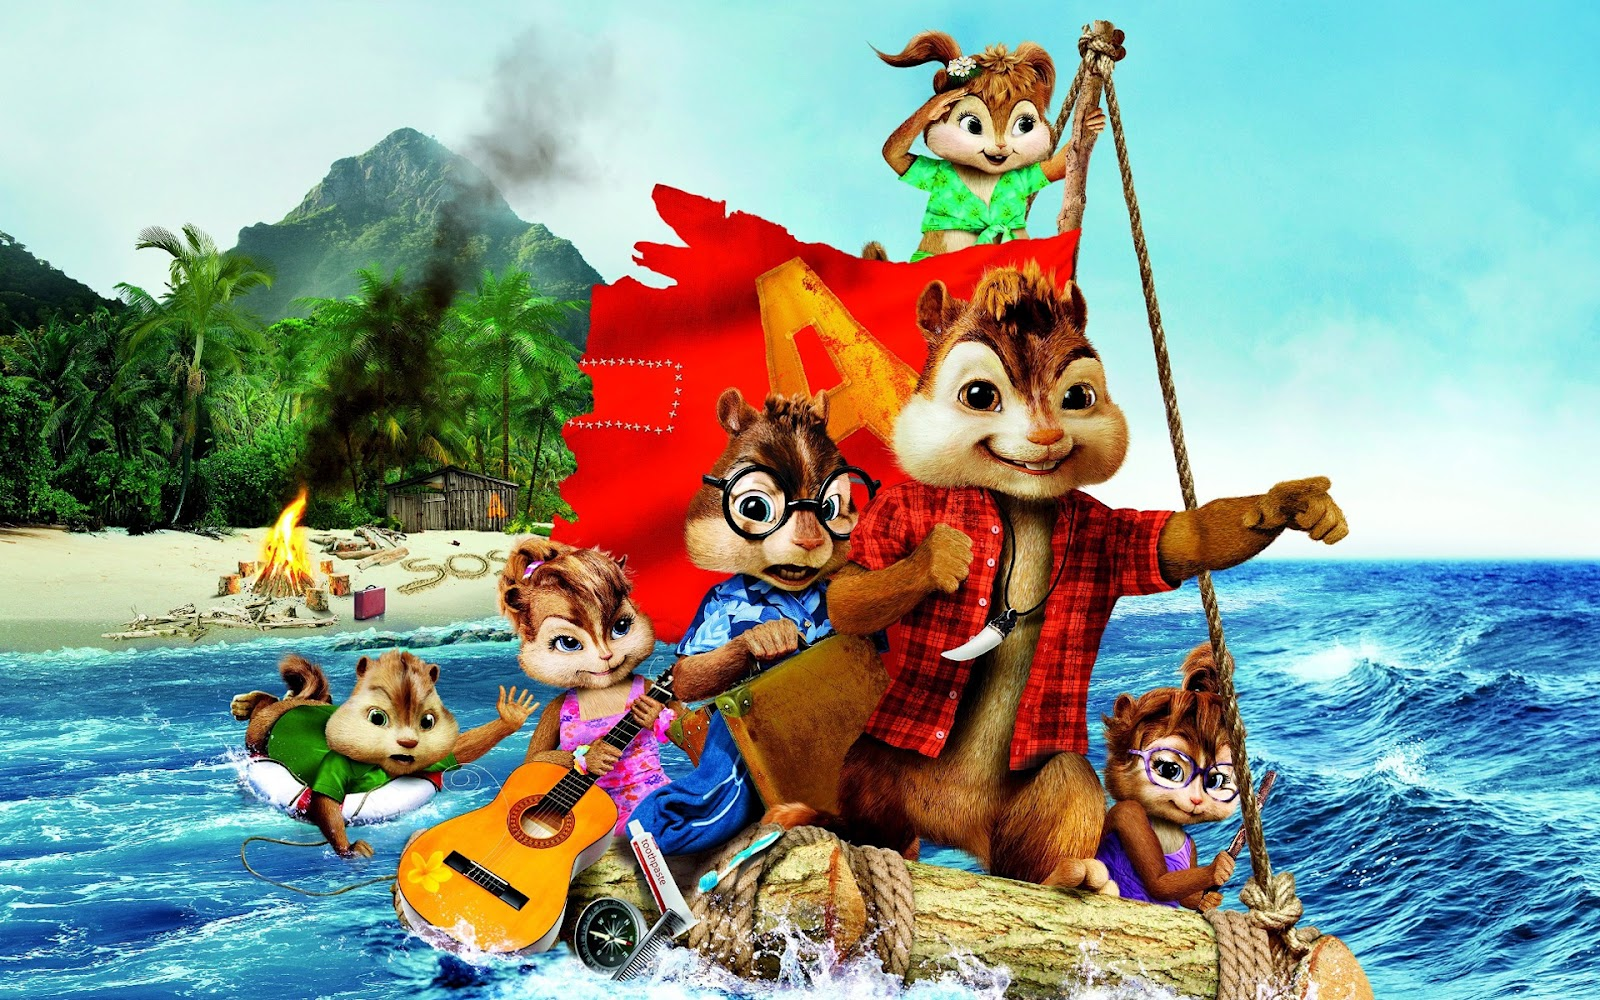 http://2.bp.blogspot.com/-hN-KrjGCtmA/T039Yv8qCvI/AAAAAAAAAFI/pomqtNQfBqg/s1600/alvin_and_the_chipmunks_3_2011-wide.jpg